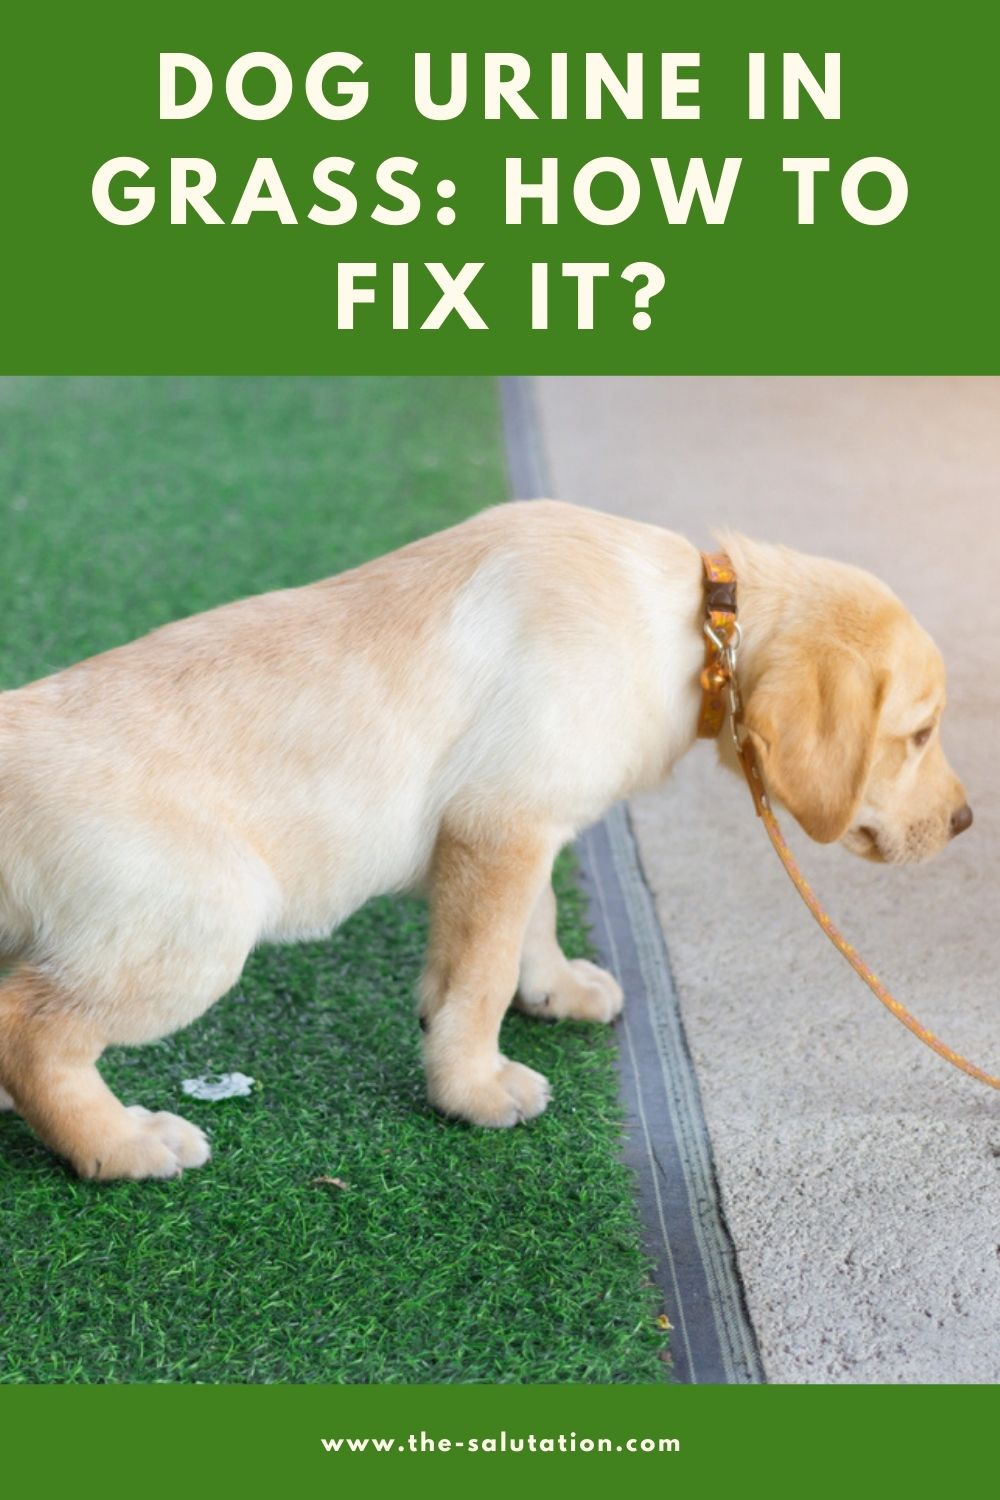 Dog Urine in Grass How to Fix it (8 Tips) 2